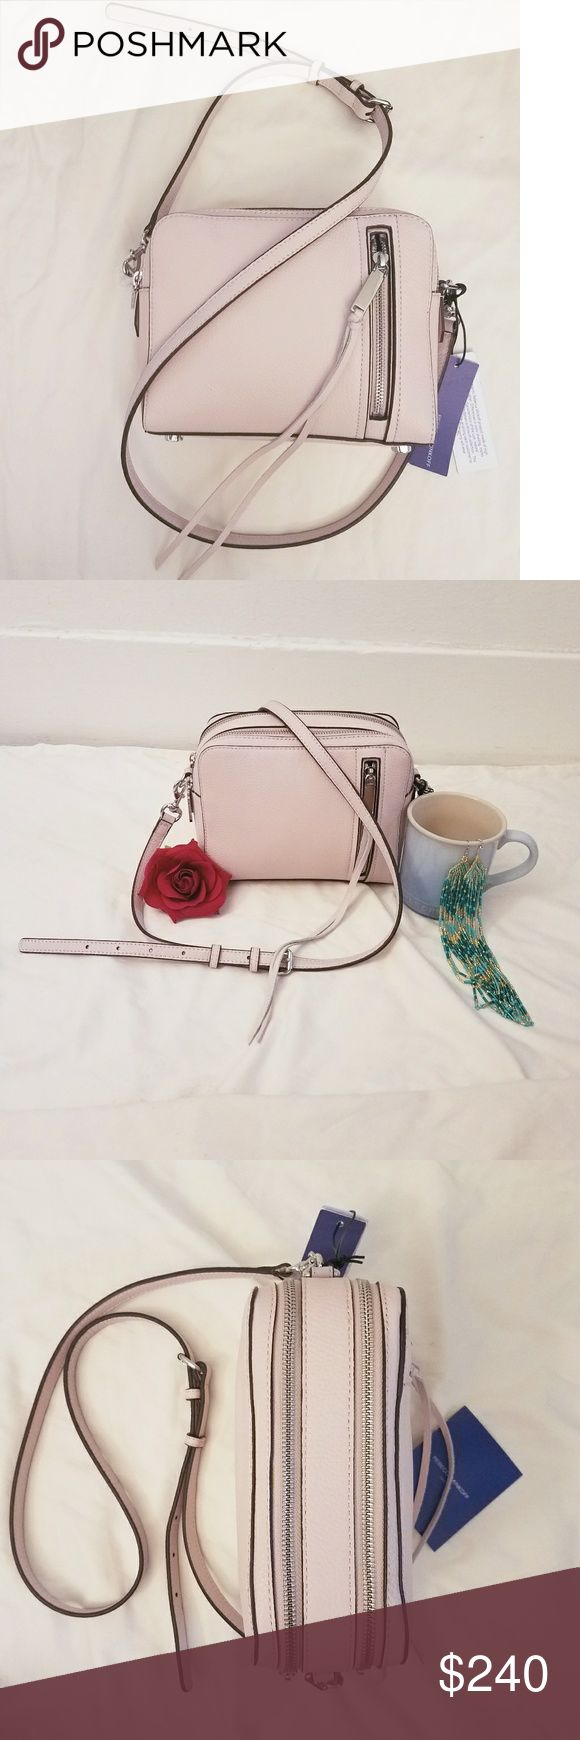 🌻NEW! 🌻Rebecca Minkoff Crossbody 🌻Pale Pink India Crossbody  🌻by Rebecca Minkoff 🌻Genuine Leather 🌻Extra Straps and Care Instructions Included  Absolutely Perfect!   🌻Make An Offer! Rebecca Minkoff Bags Crossbody Bags